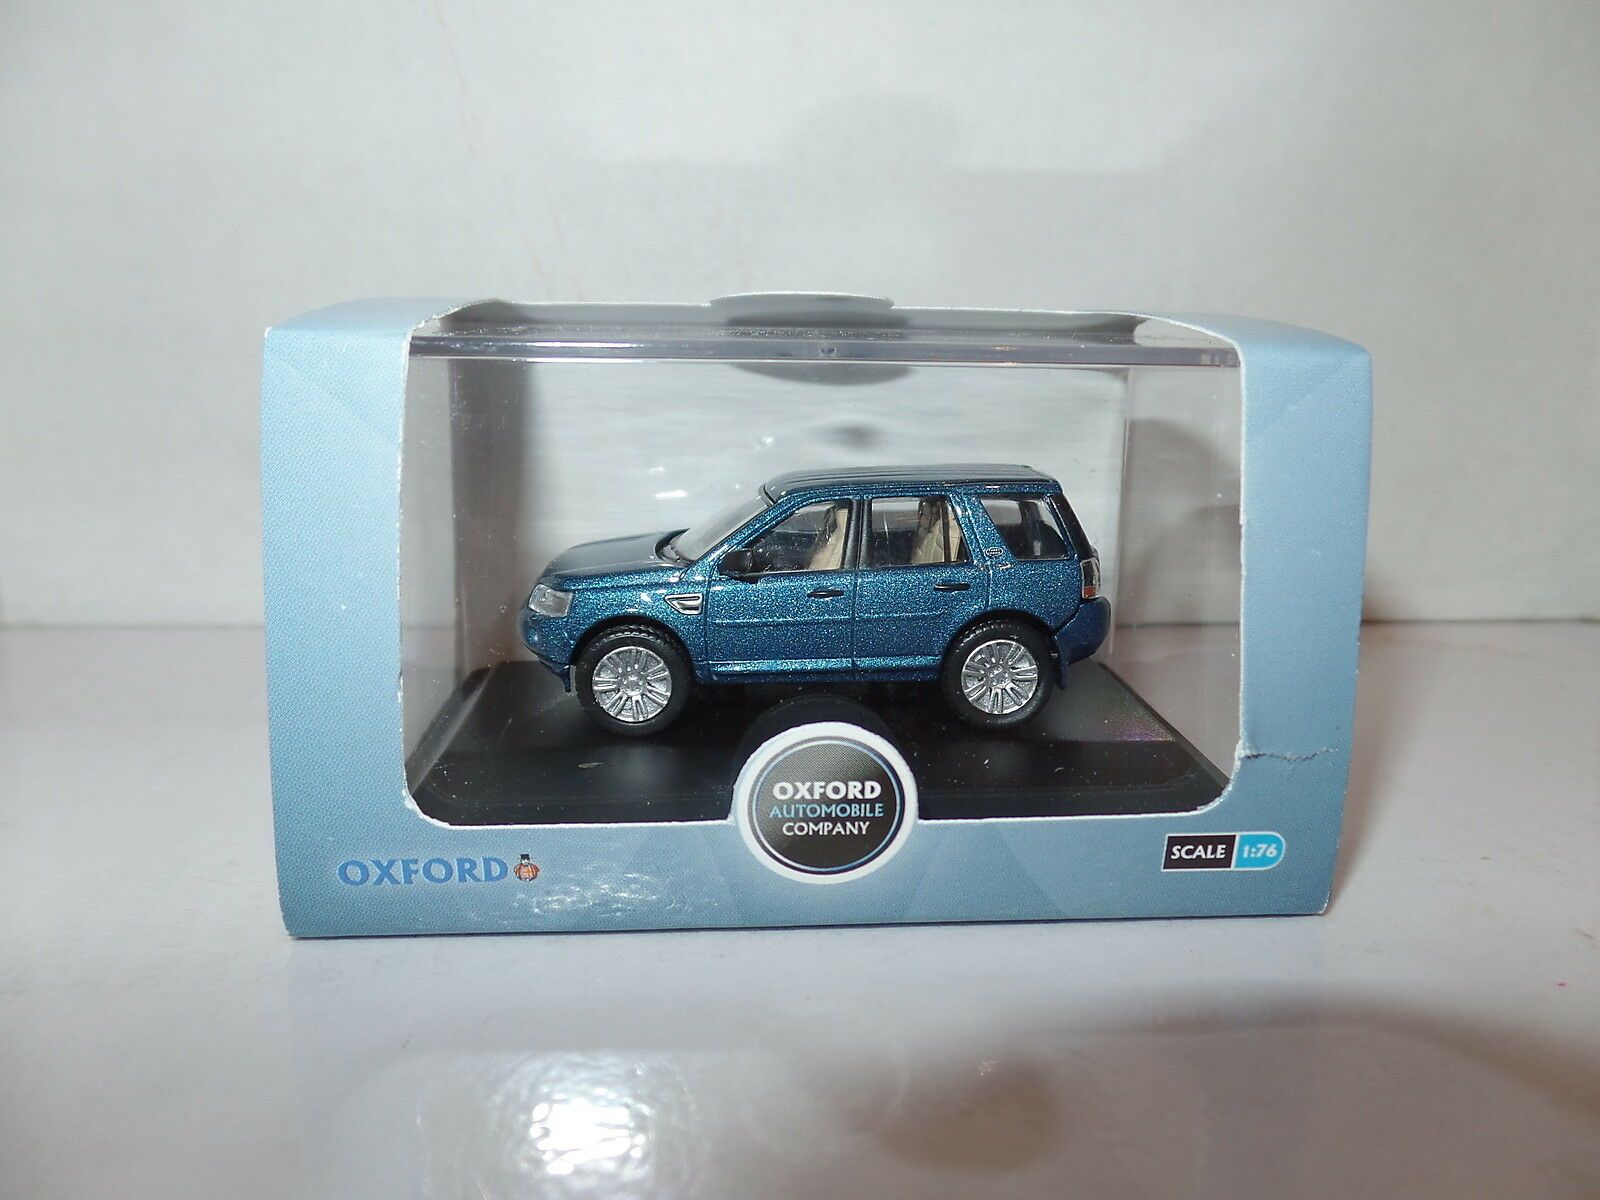 Oxford Diecast 1:76 Scale Land Rover Freelander In Mauritius Blue 176